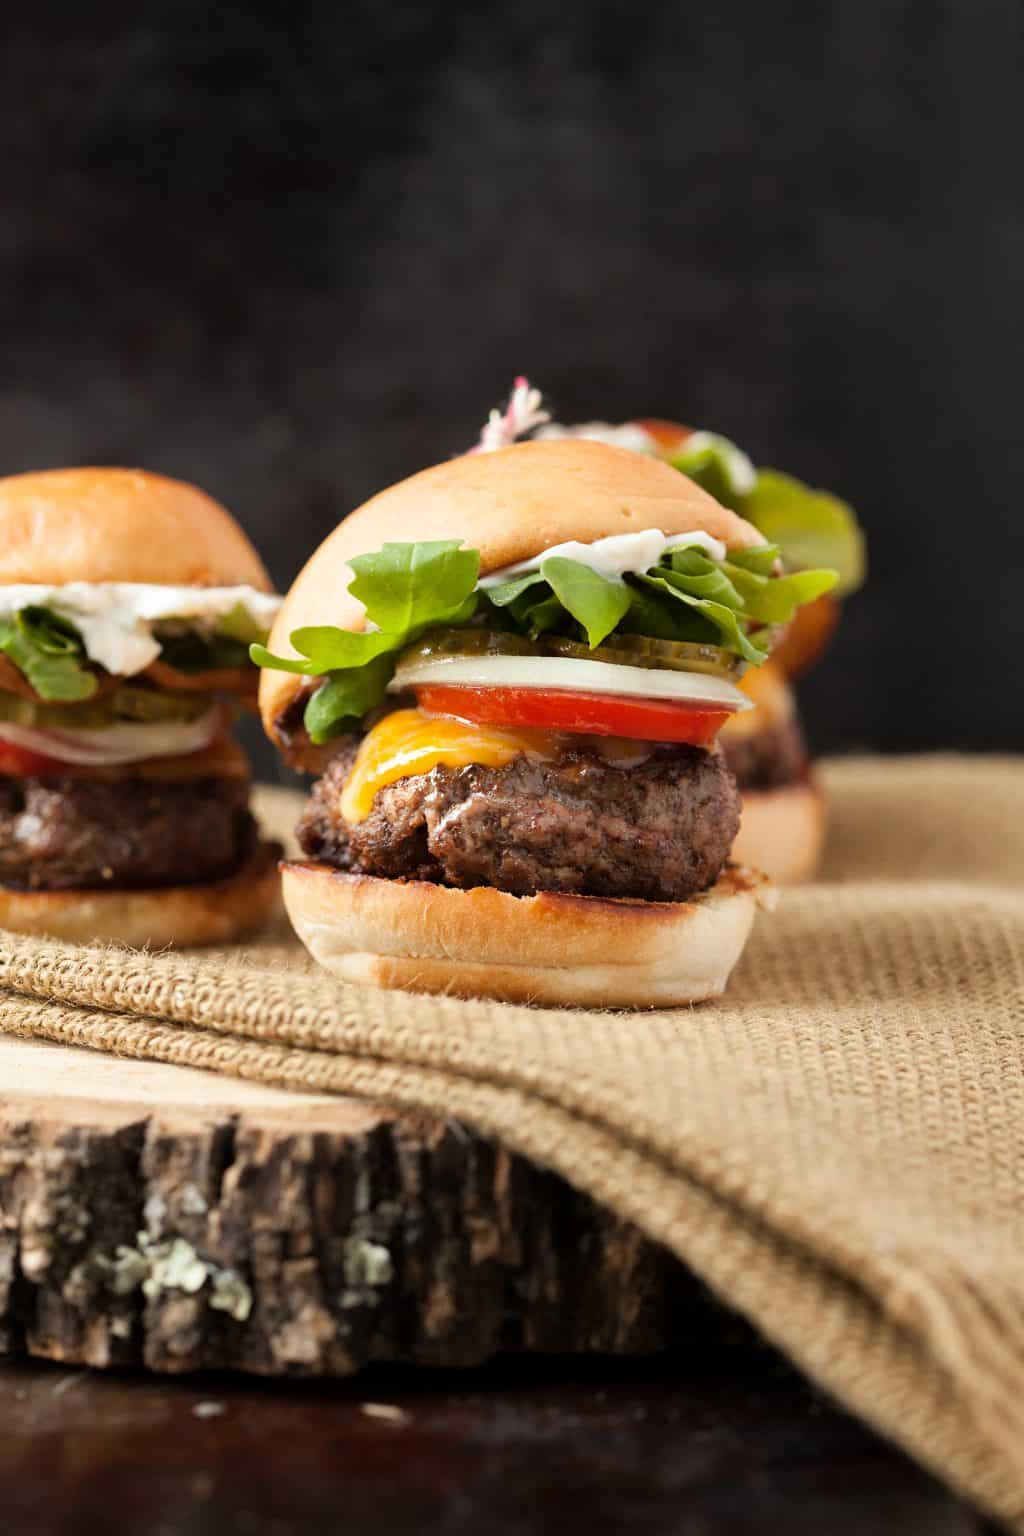 I need a burger! Easy bacon cheeseburger sliders are just the right all-American appetizer everyone will like. And you can eat more because they're little, right?